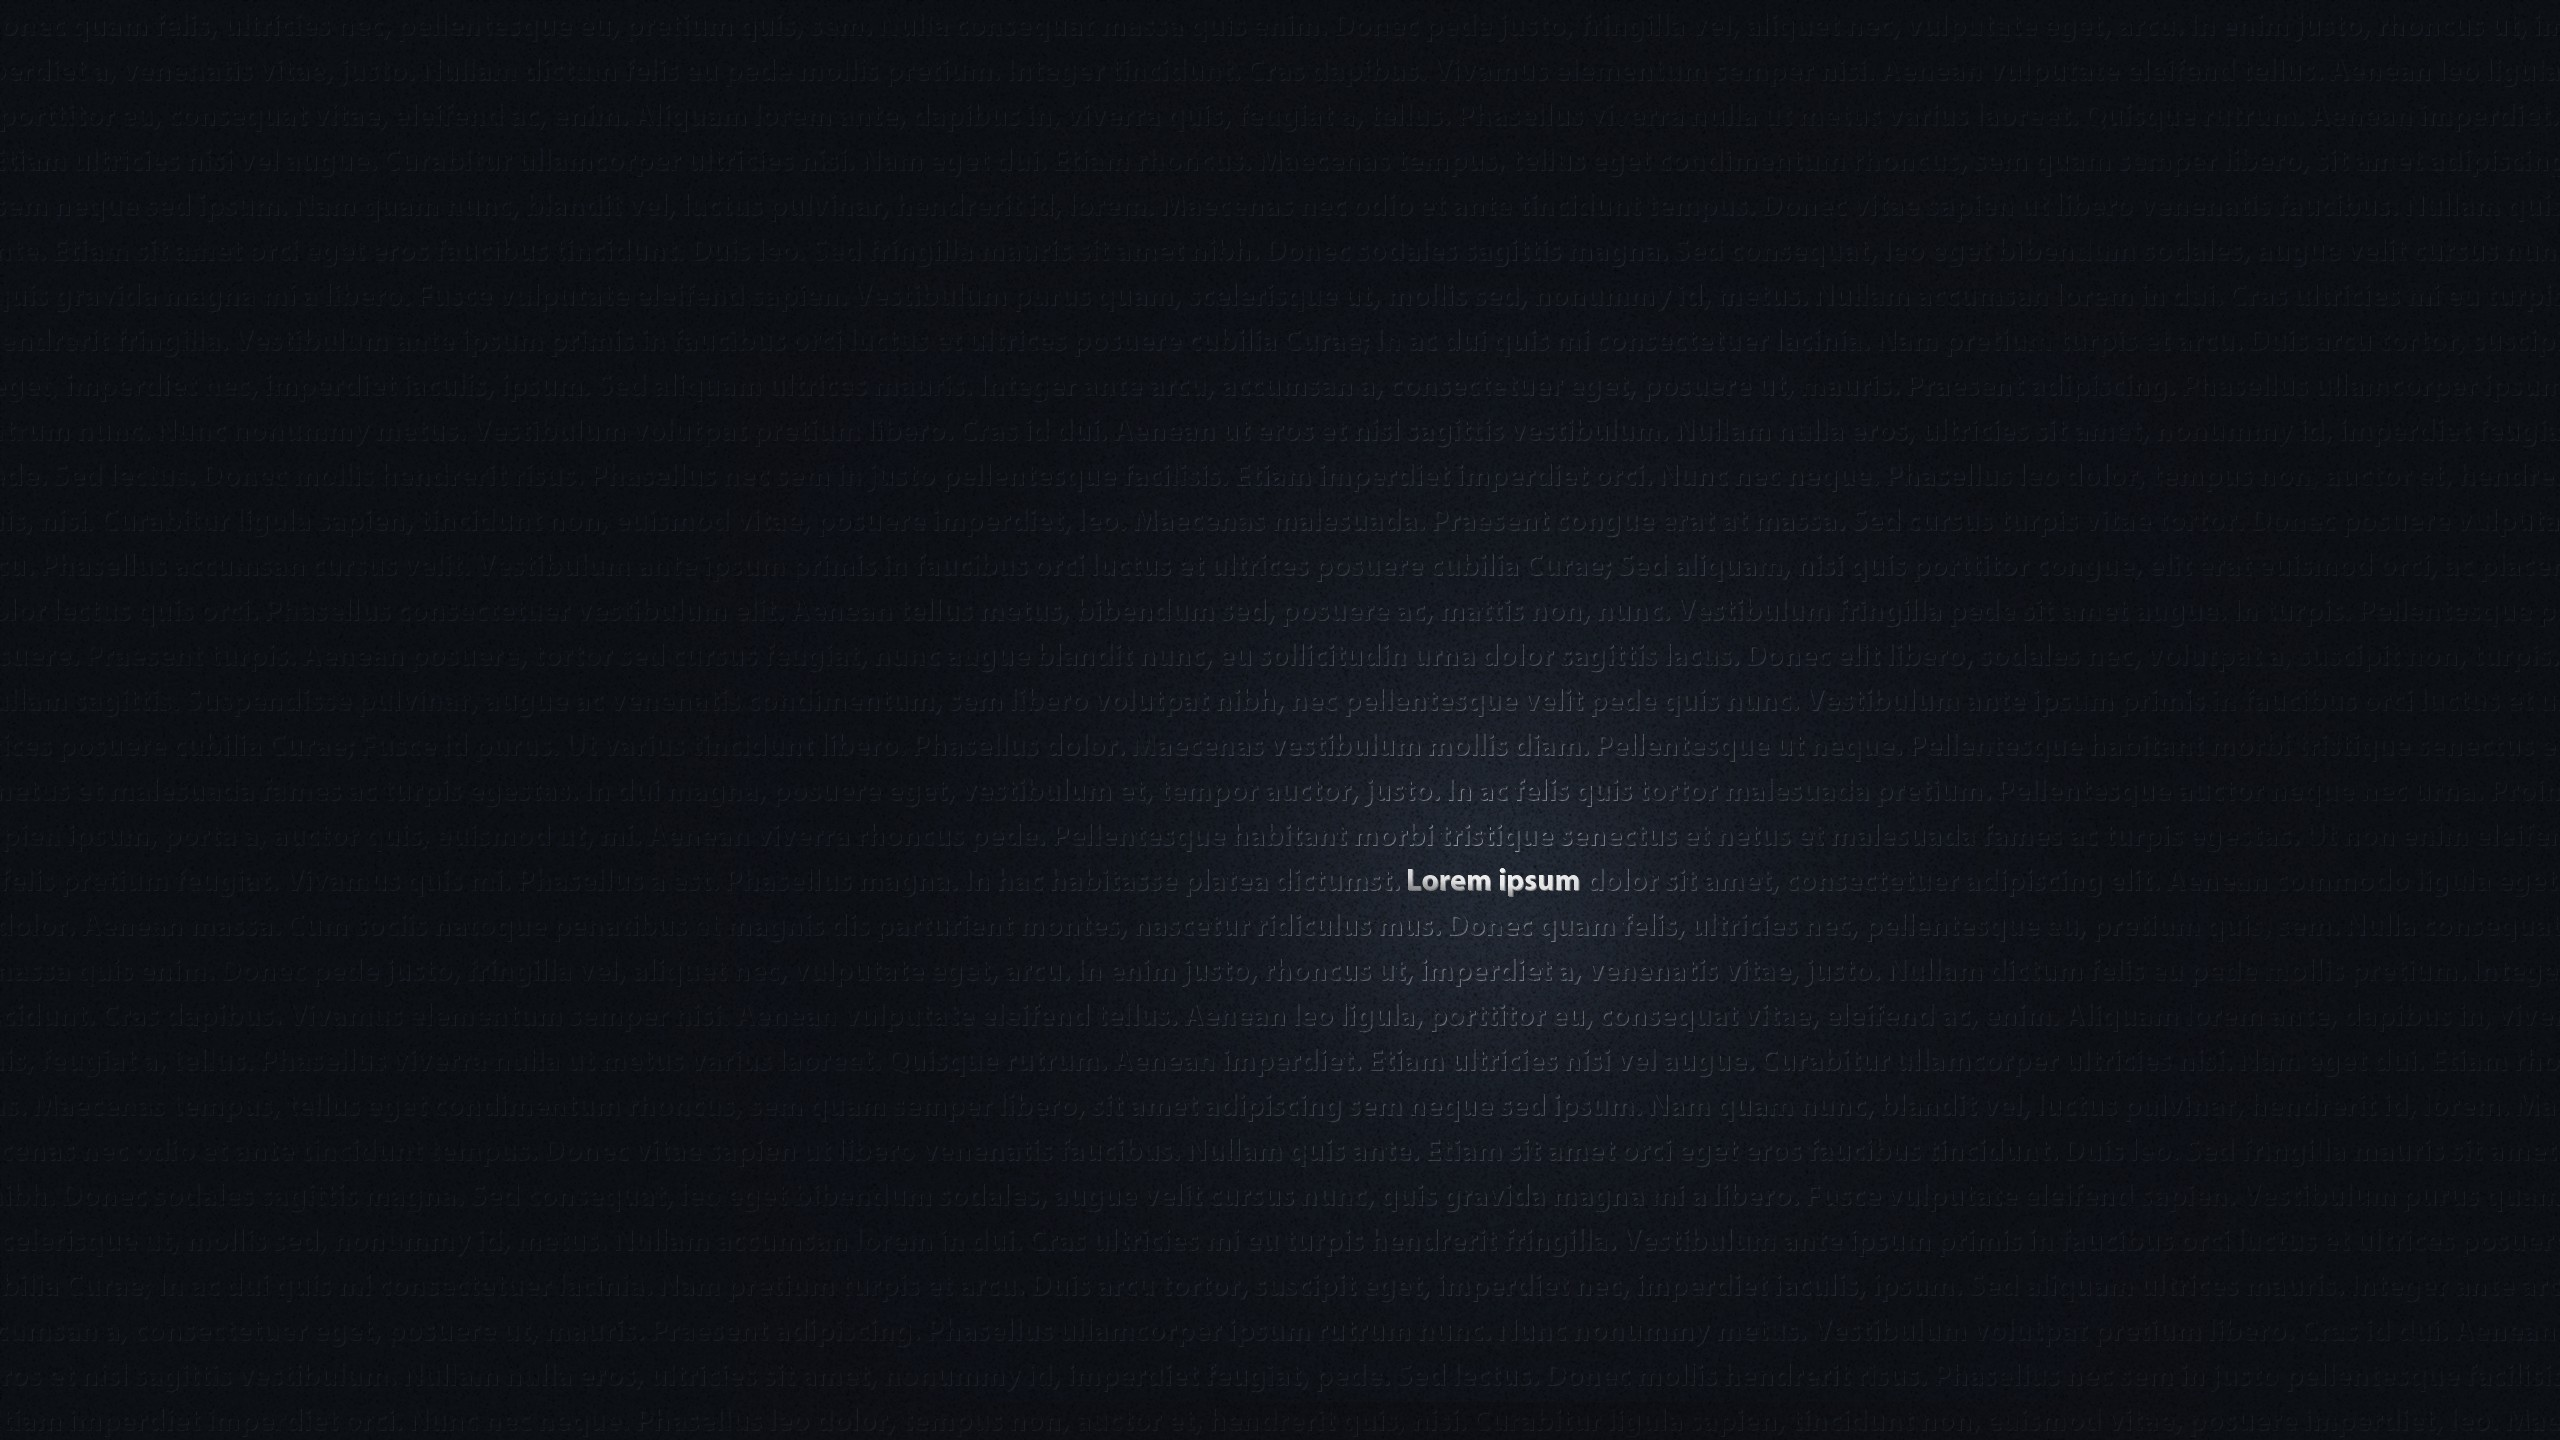 Blue Minimalistic Dark Typography Lorem Ipsum Background Wallpaper